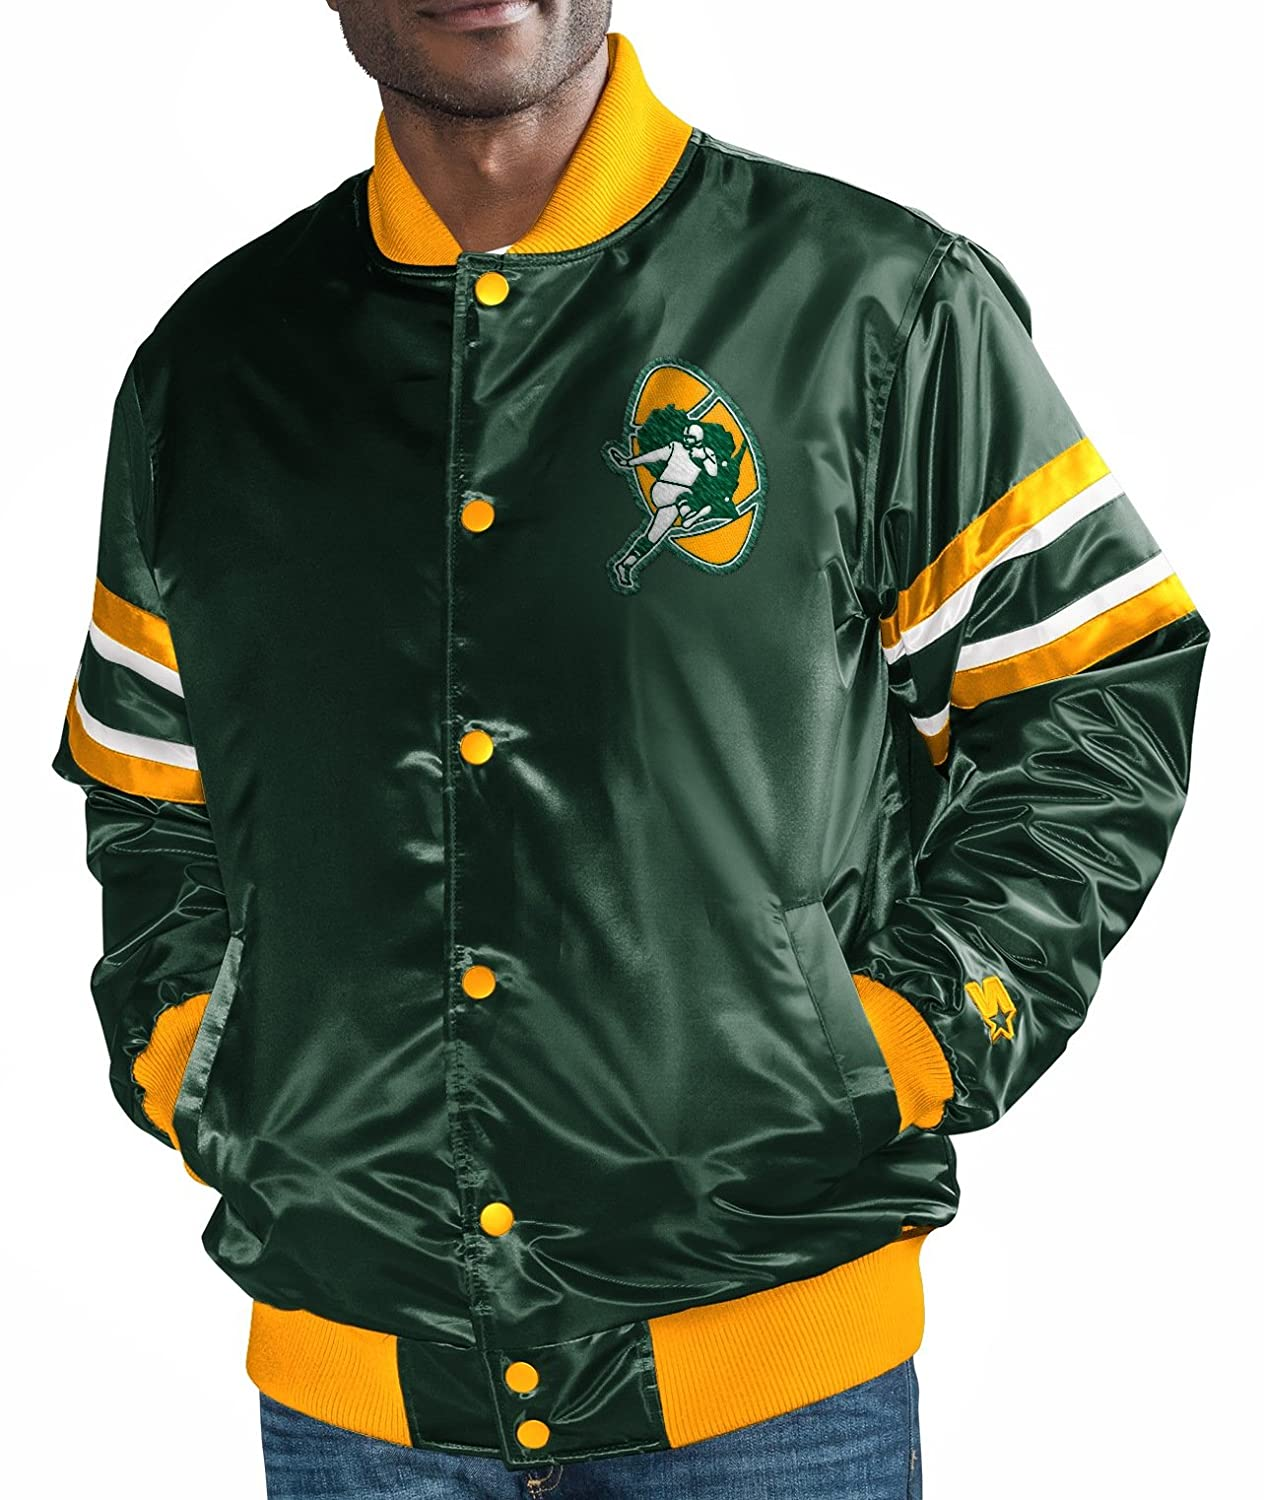 Amazon.com : STARTER Green Bay Packers NFL The Captain ...